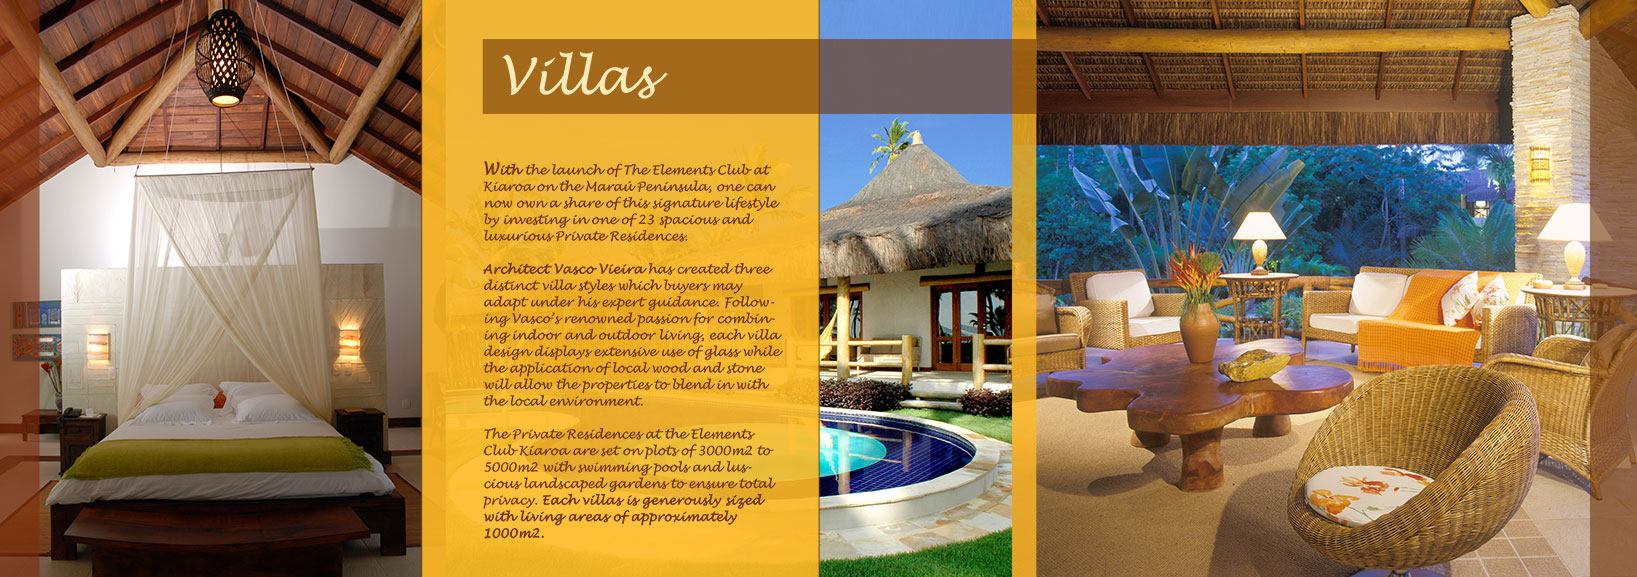 Brochure design submission to a company promoting a luxury holiday location